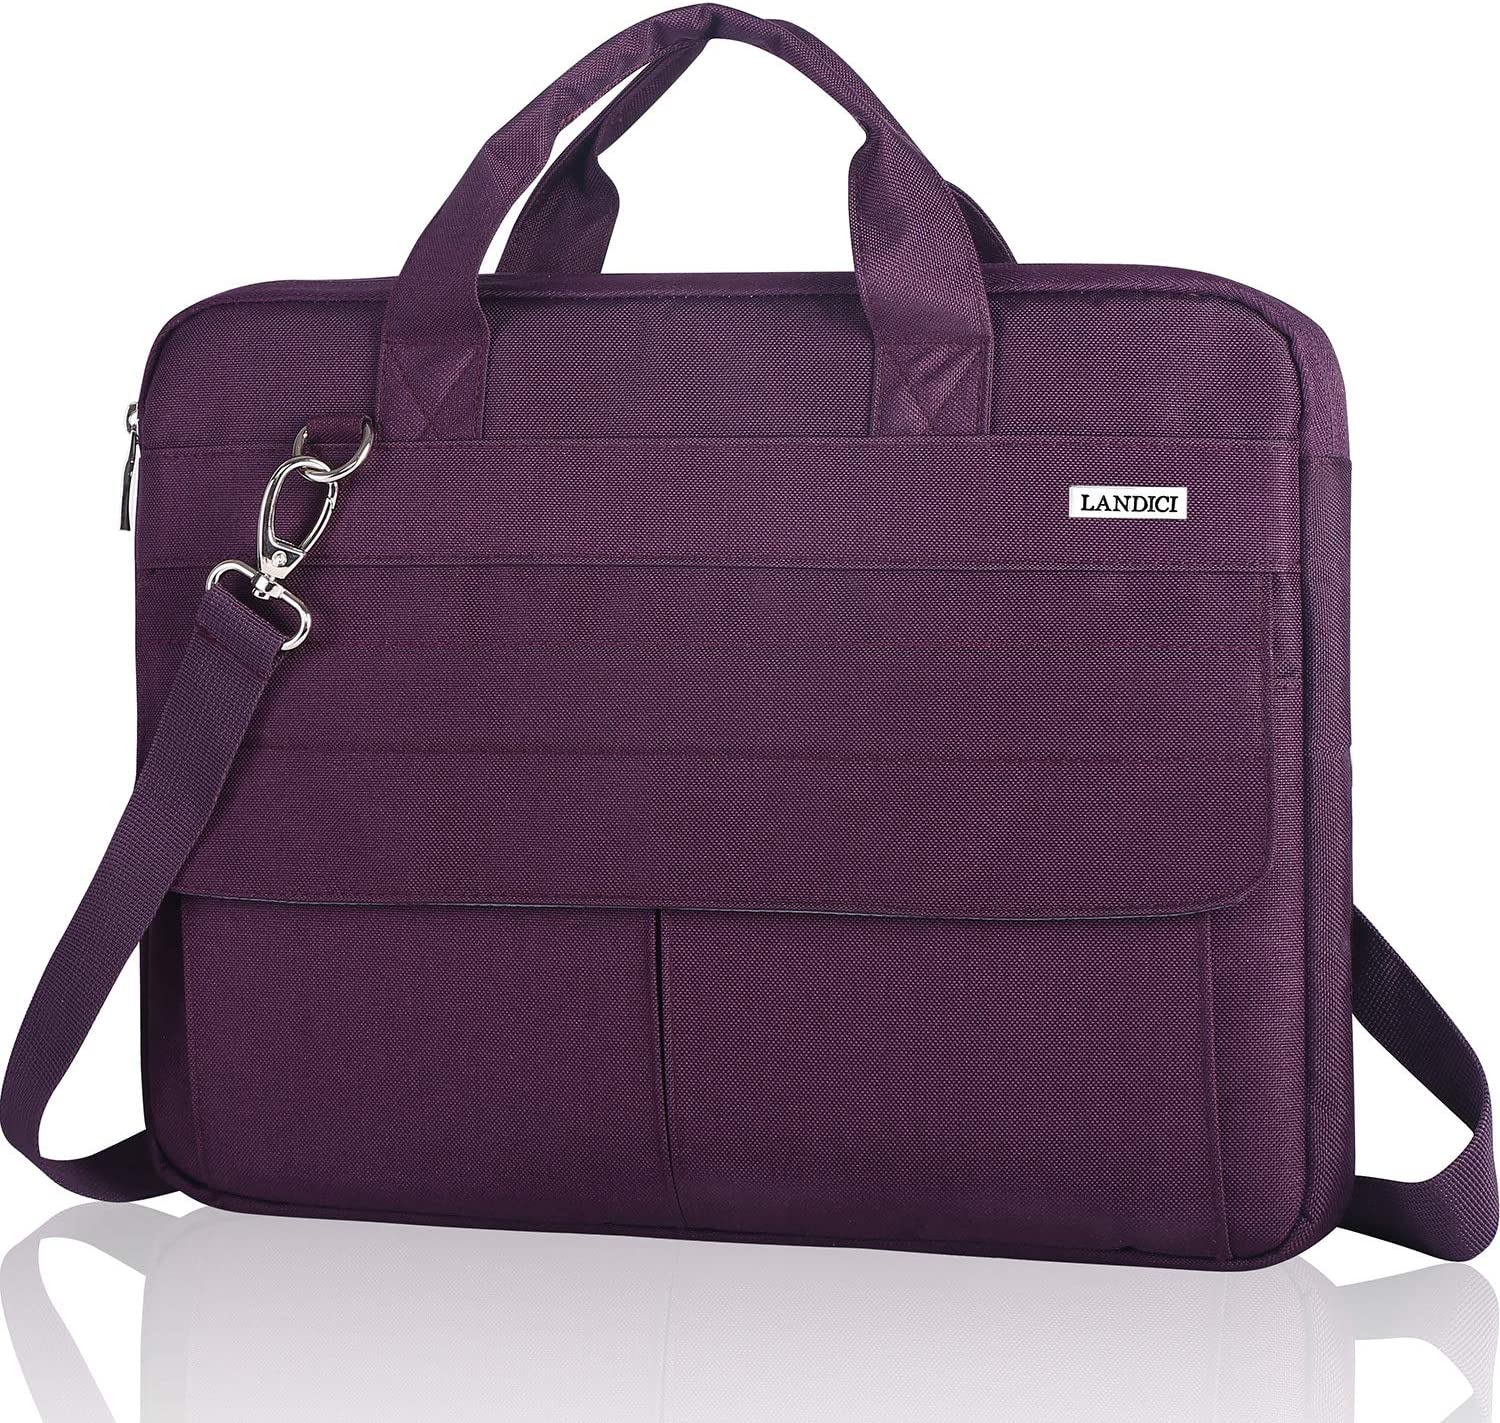 Landici 17 17.3 Inch Laptop Bag Case with Shoulder Strap, 360 Protective Waterproof Computer Carrying Sleeve Cover Compatible with HP Envy 17, 2020 Asus, New Razer Blade Pro 17,Women Ladies,Purple